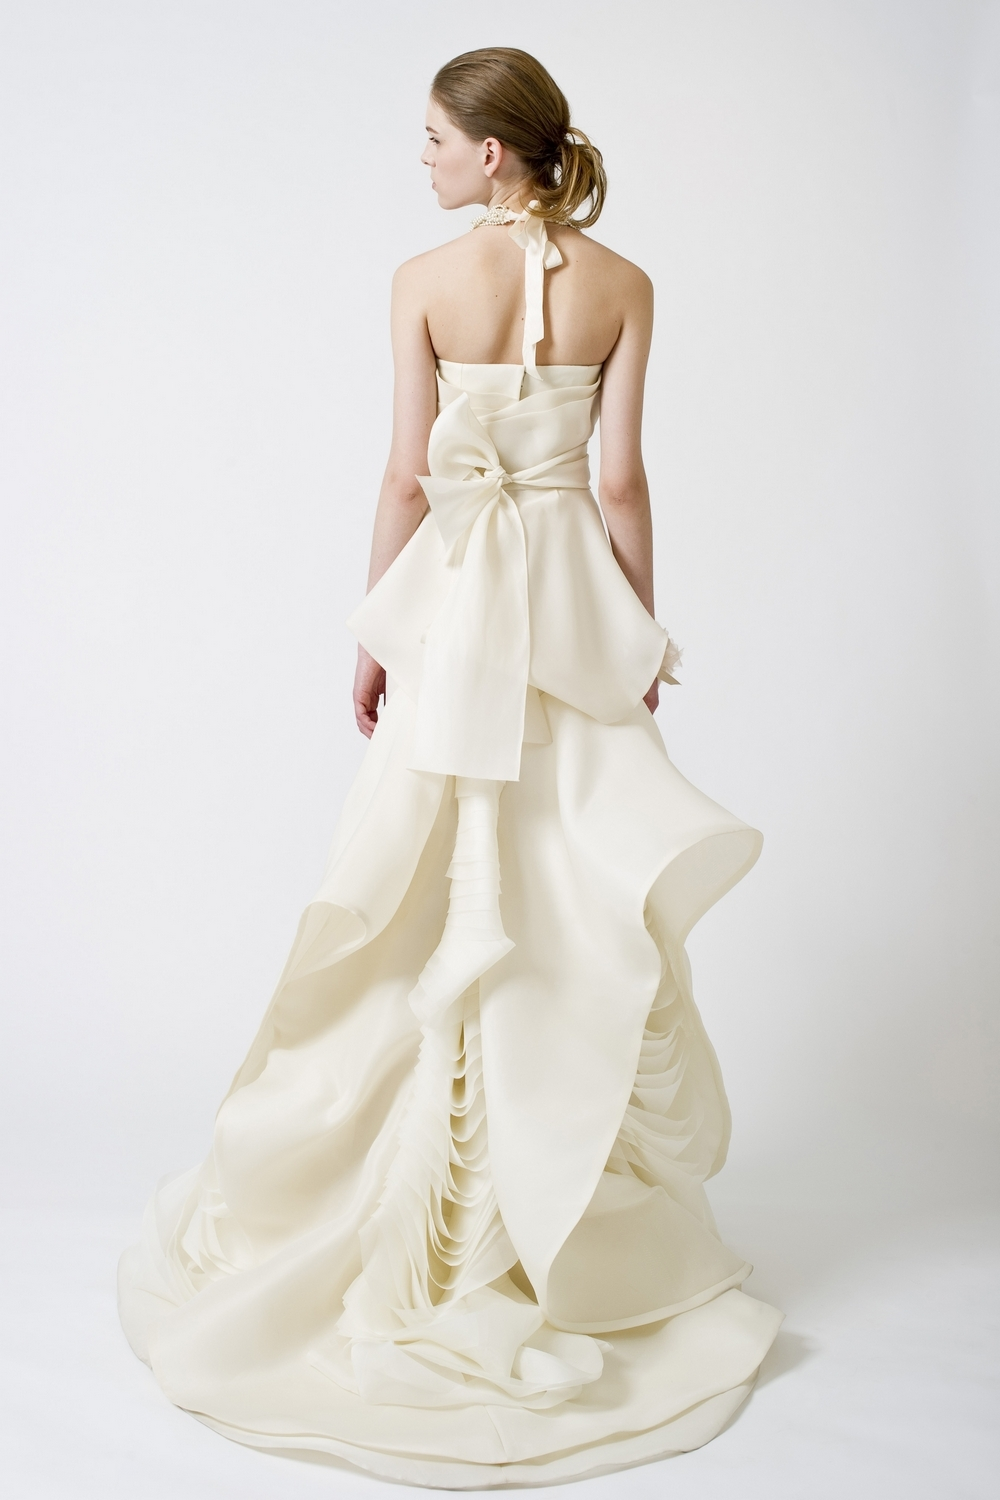 9-spring-2011-vera-wang-wedding-dress-ivory-wave-texture-back.full